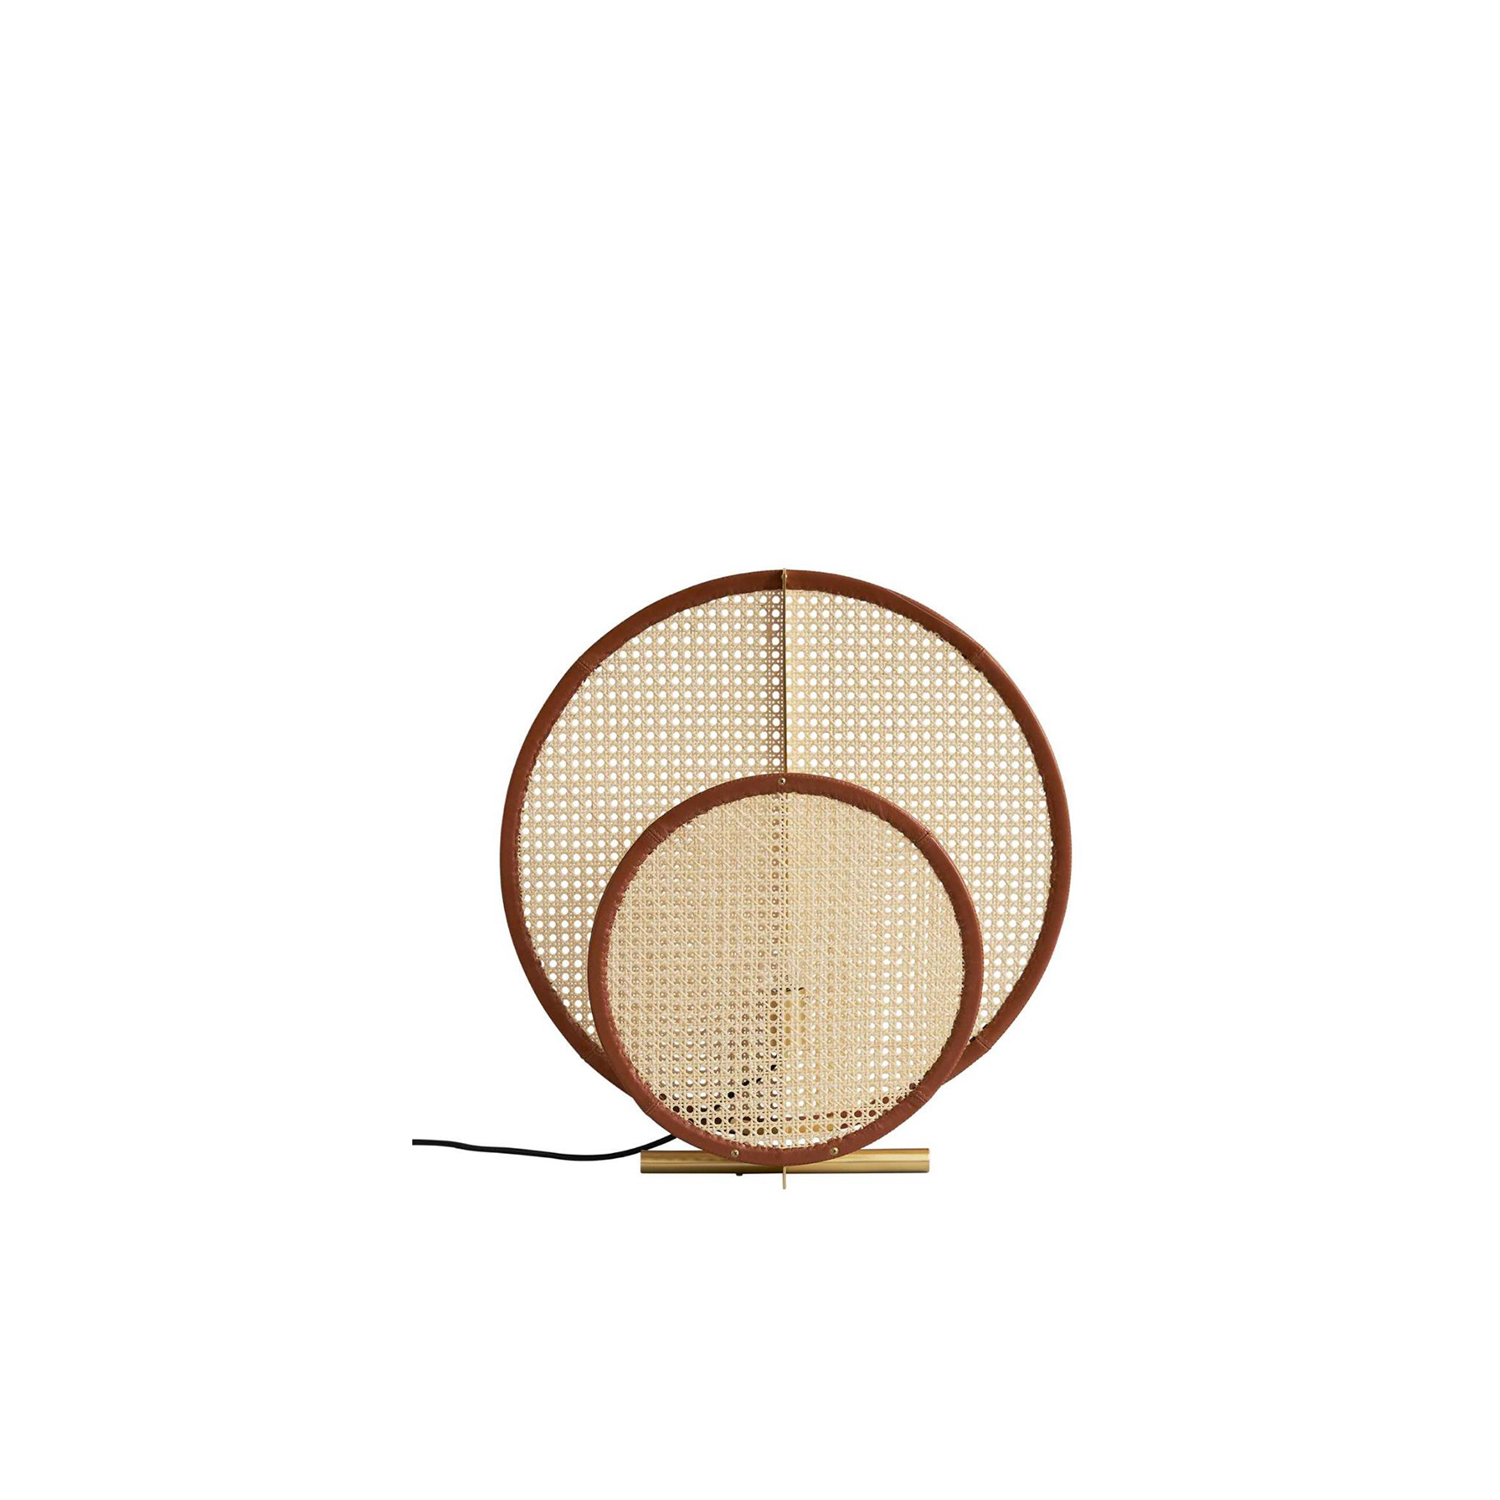 AD Colonial Floor Lamp - AD Floor Lamp is inspired by the iconic Art Deco patterns, where trapezoidal shapes expand into symmetric patterns.‎ AD Colonial is the newest addition to the AD Collection and features two semi-transparent lampshades of French rattan mesh.‎ Each lampshade is characterized by a refined cognac leather detail, stitched to the edge of circular lampshades.‎ The natural materials create a warm and inviting atmosphere, while the French mesh adds a significant play of shadows.‎ | Matter of Stuff